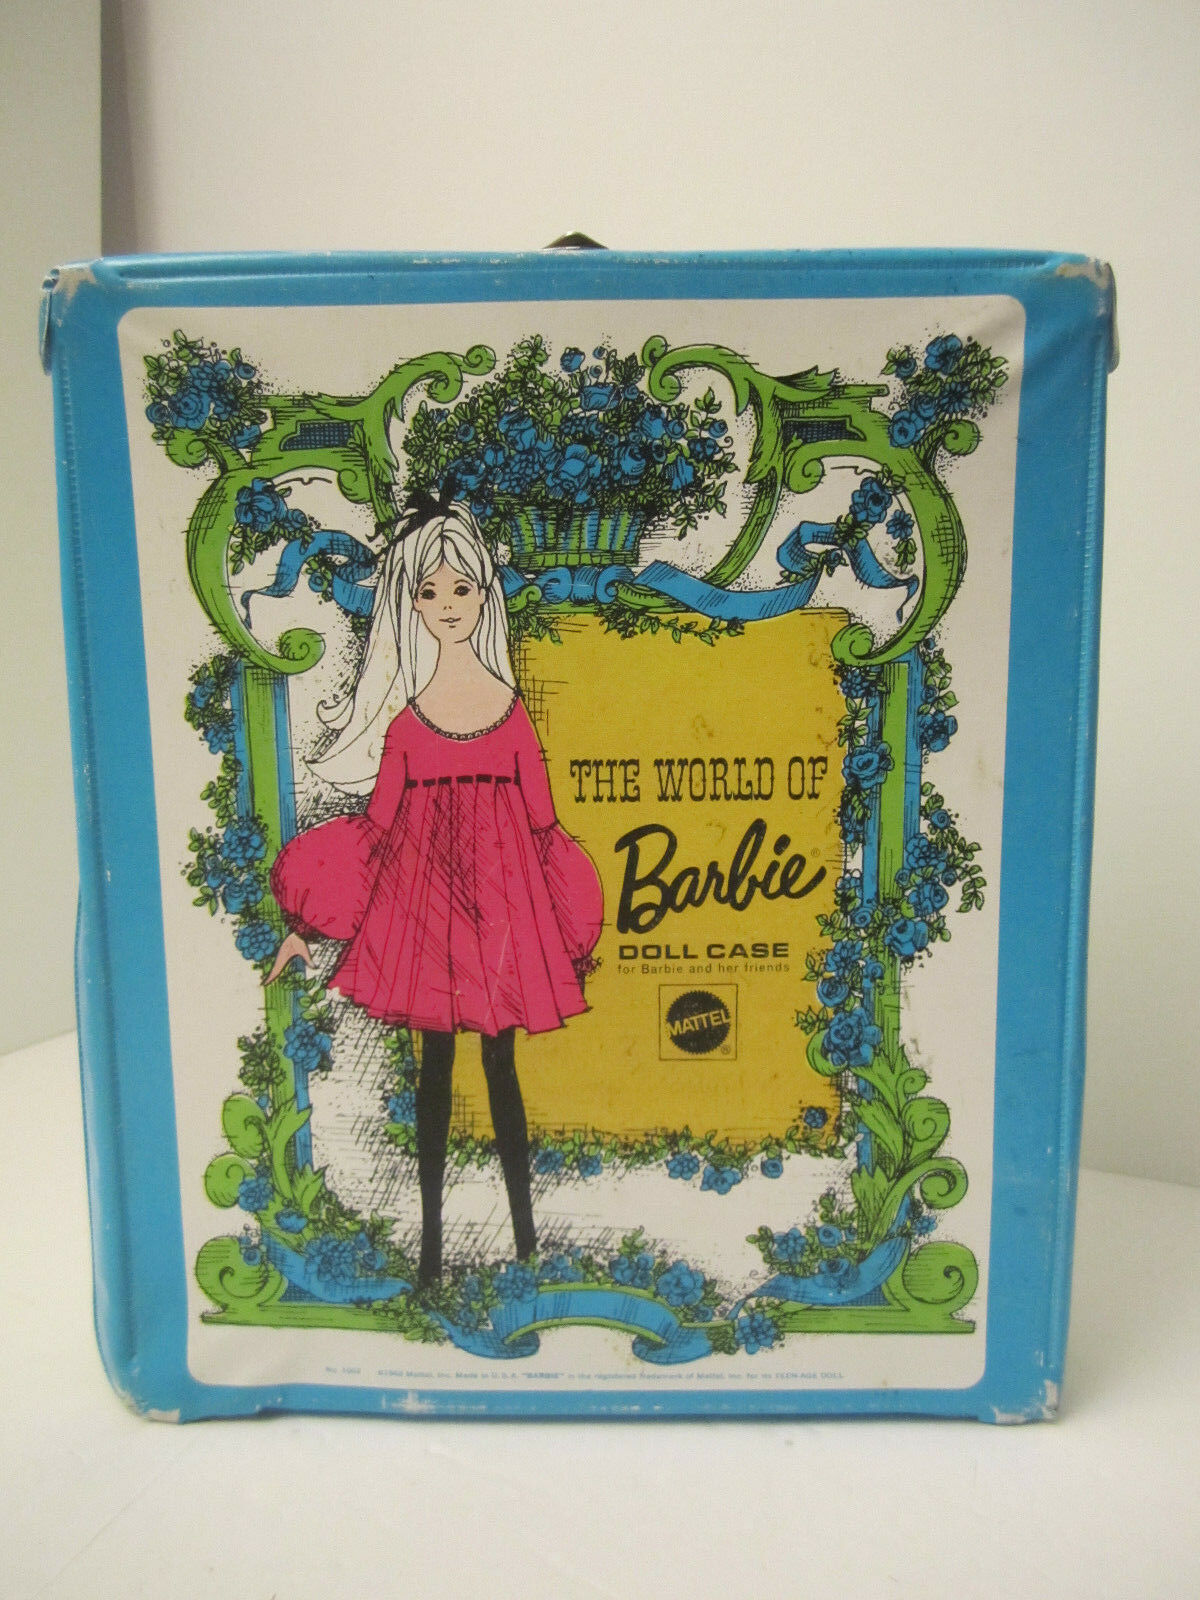 The World Of Barbie Doll Case 1002 Blue Vintage 1968 Doll Carrying Case